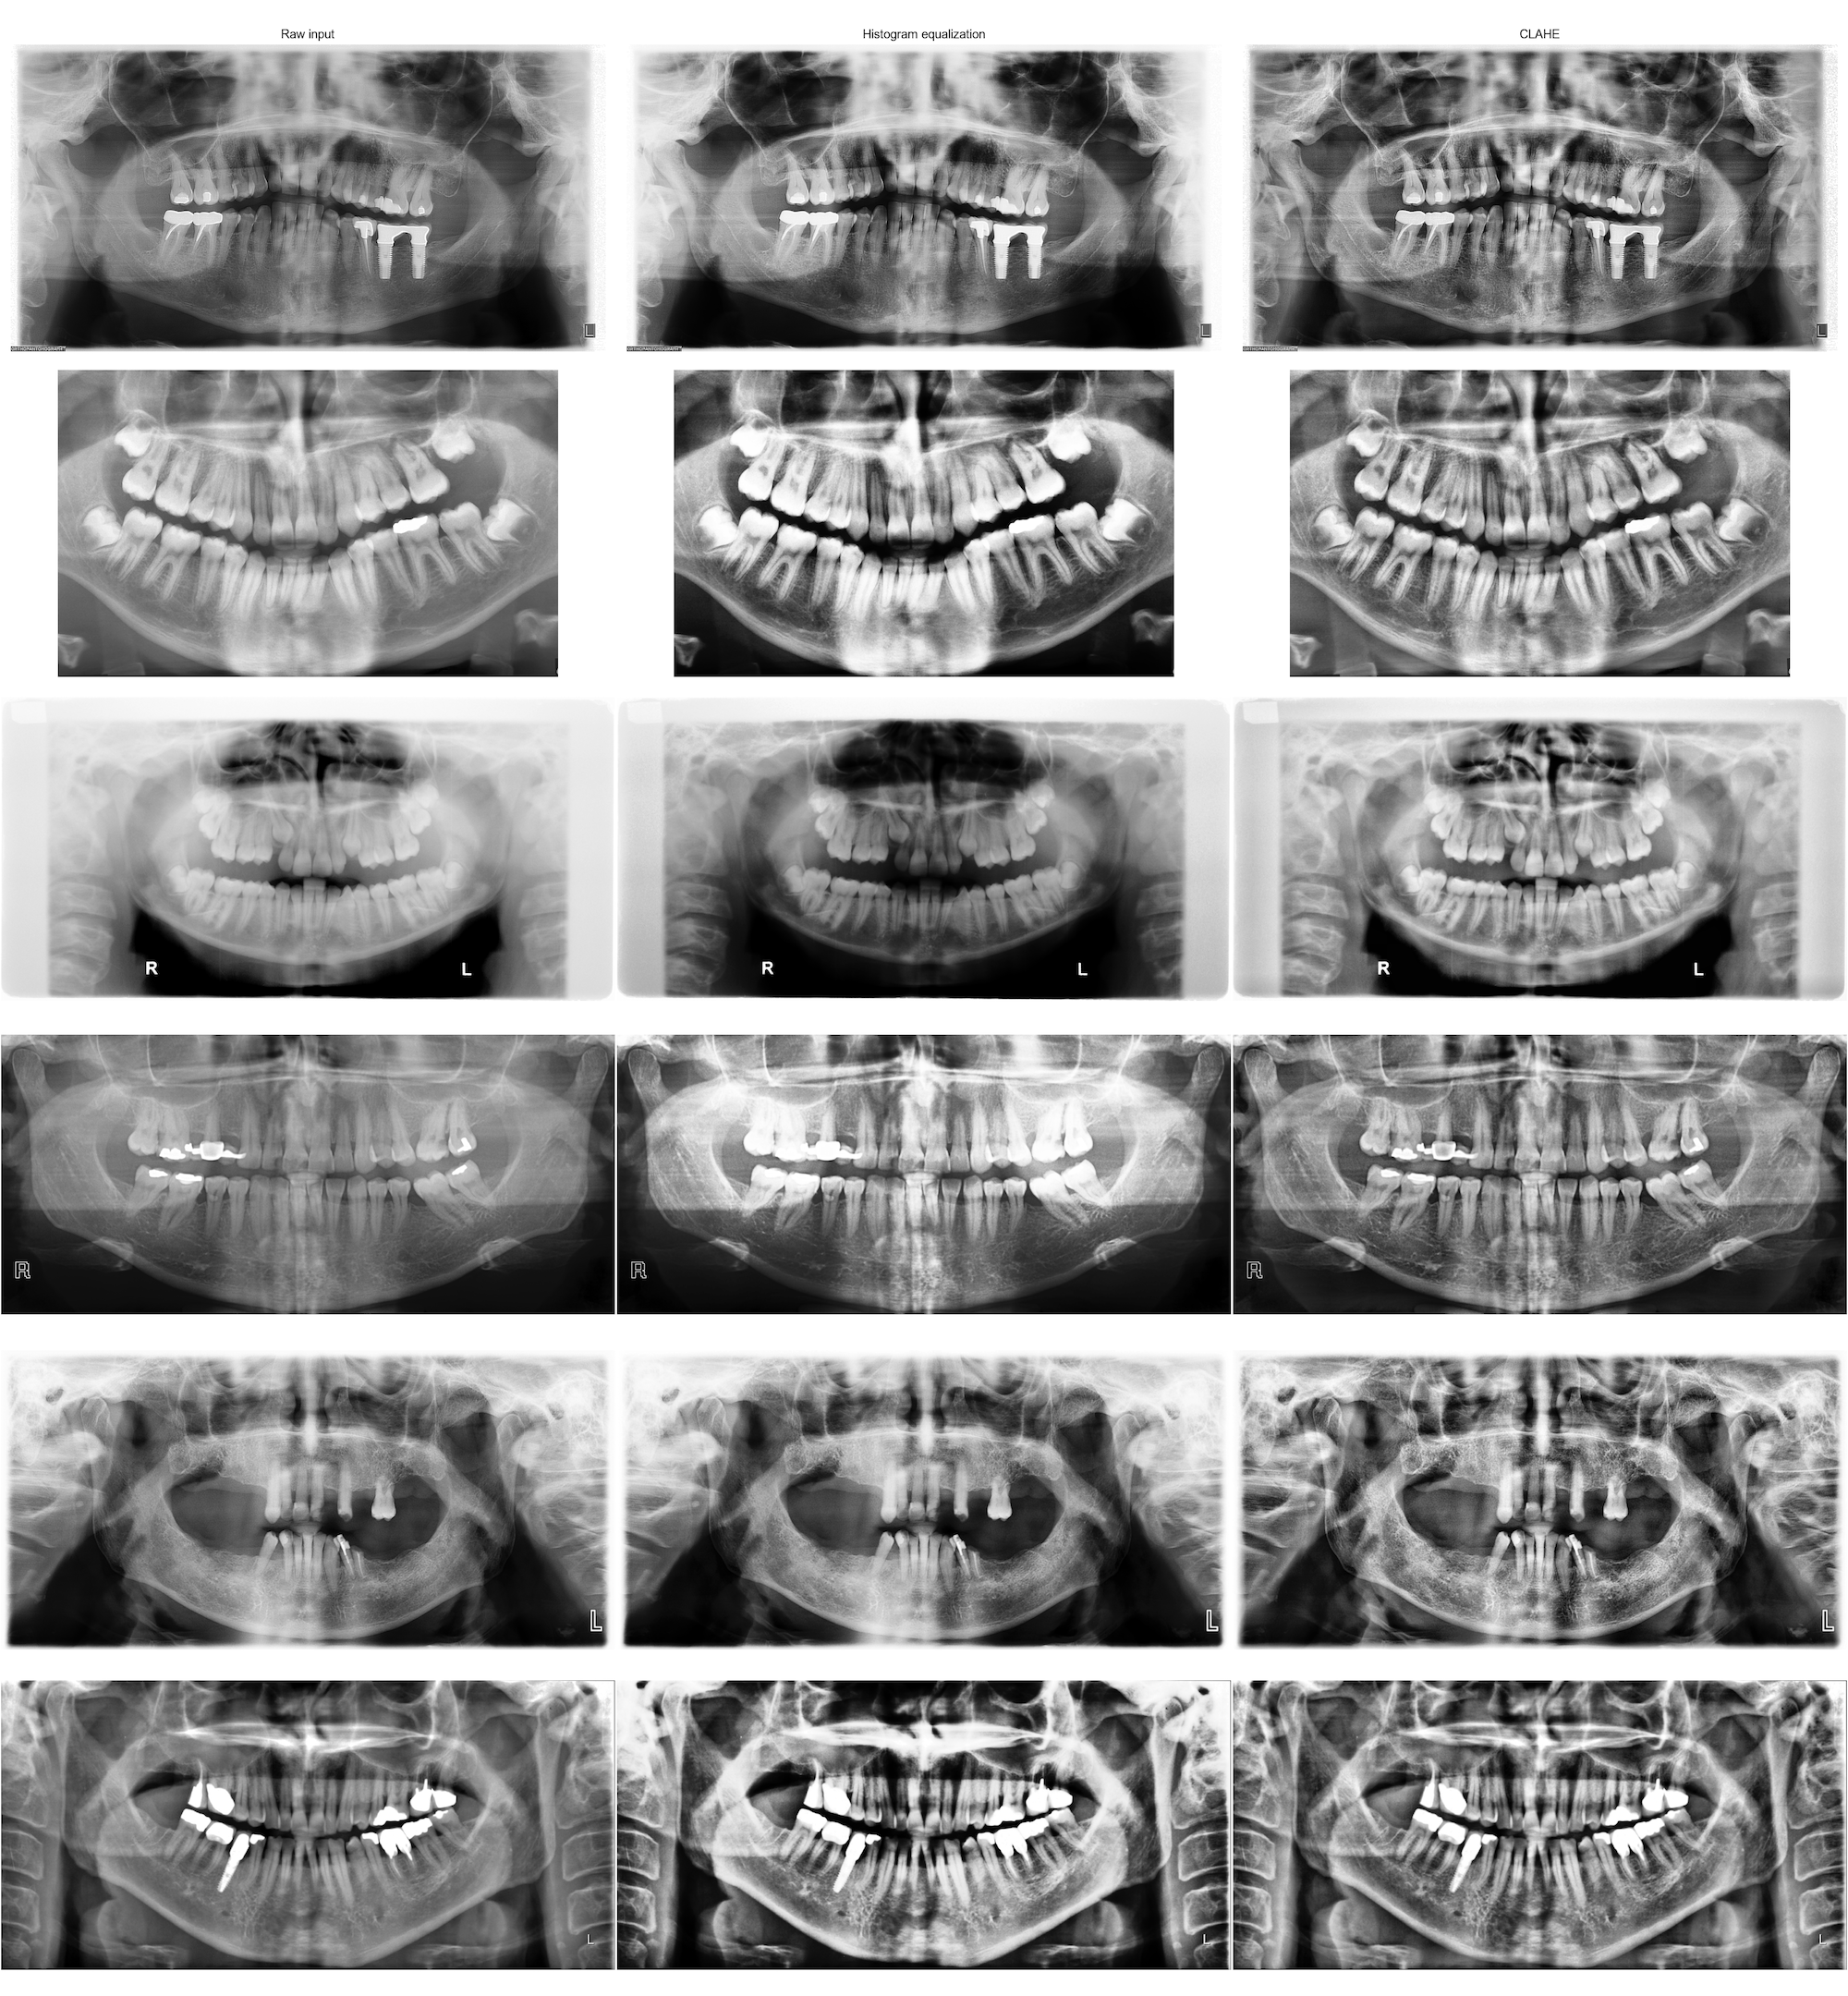 Improving deep learning object detection on dental x-rays